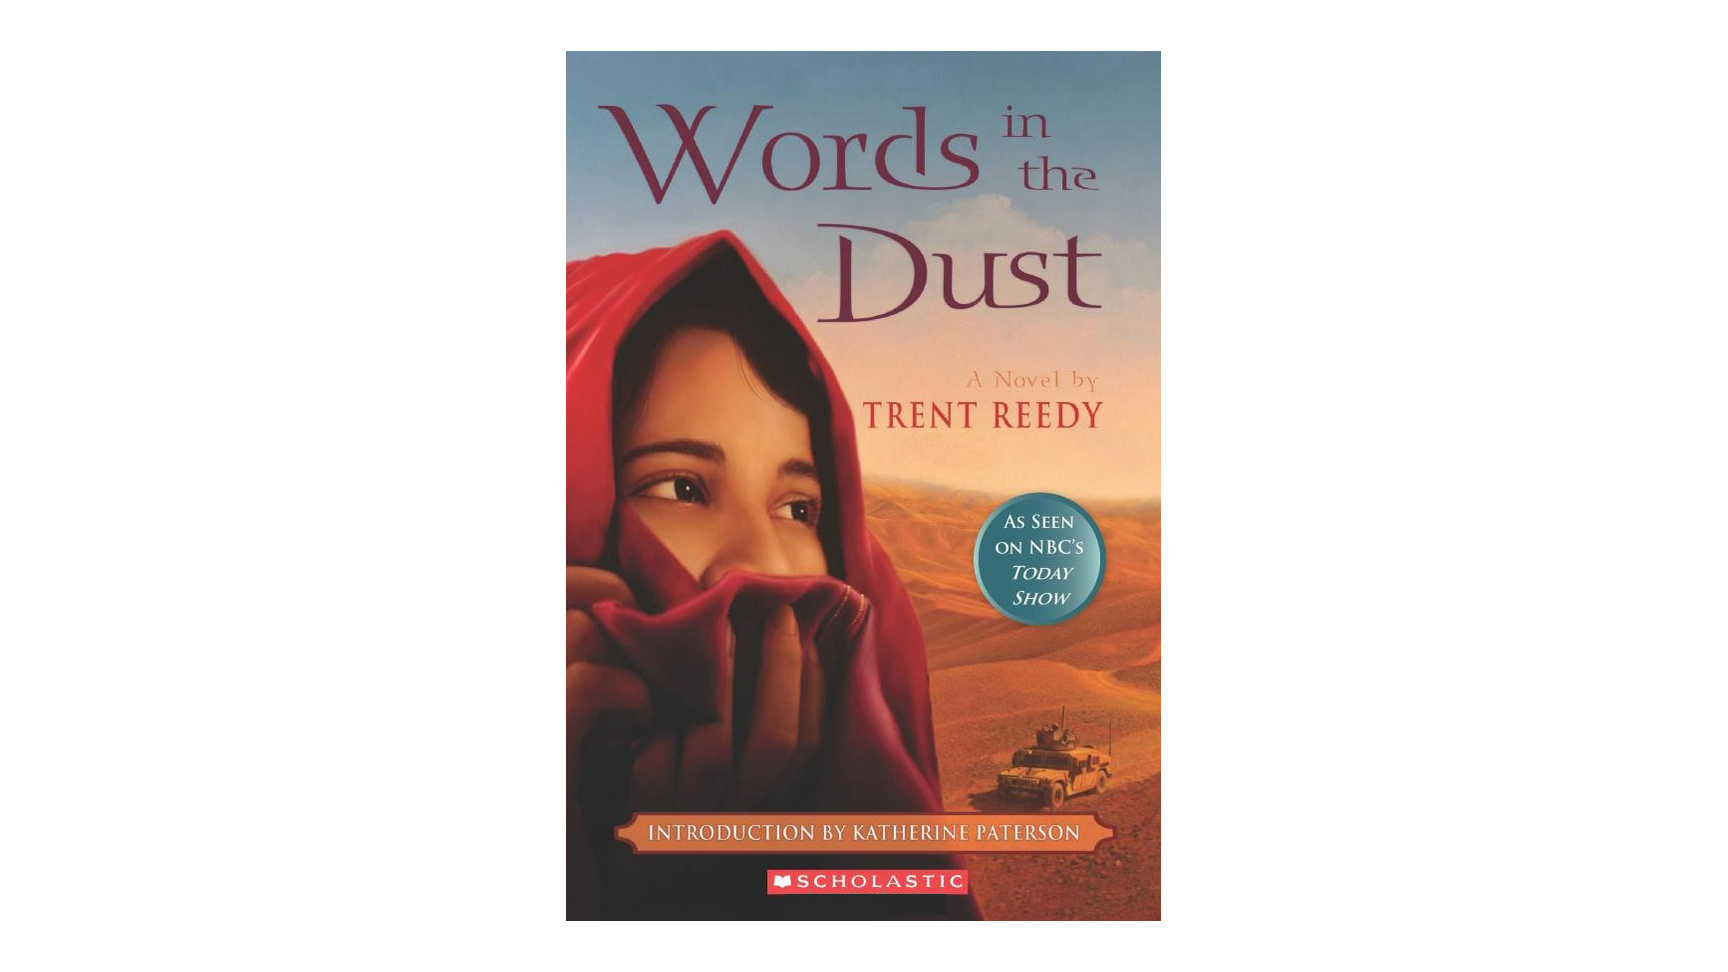 Words in the Dust, by Trent Reedy